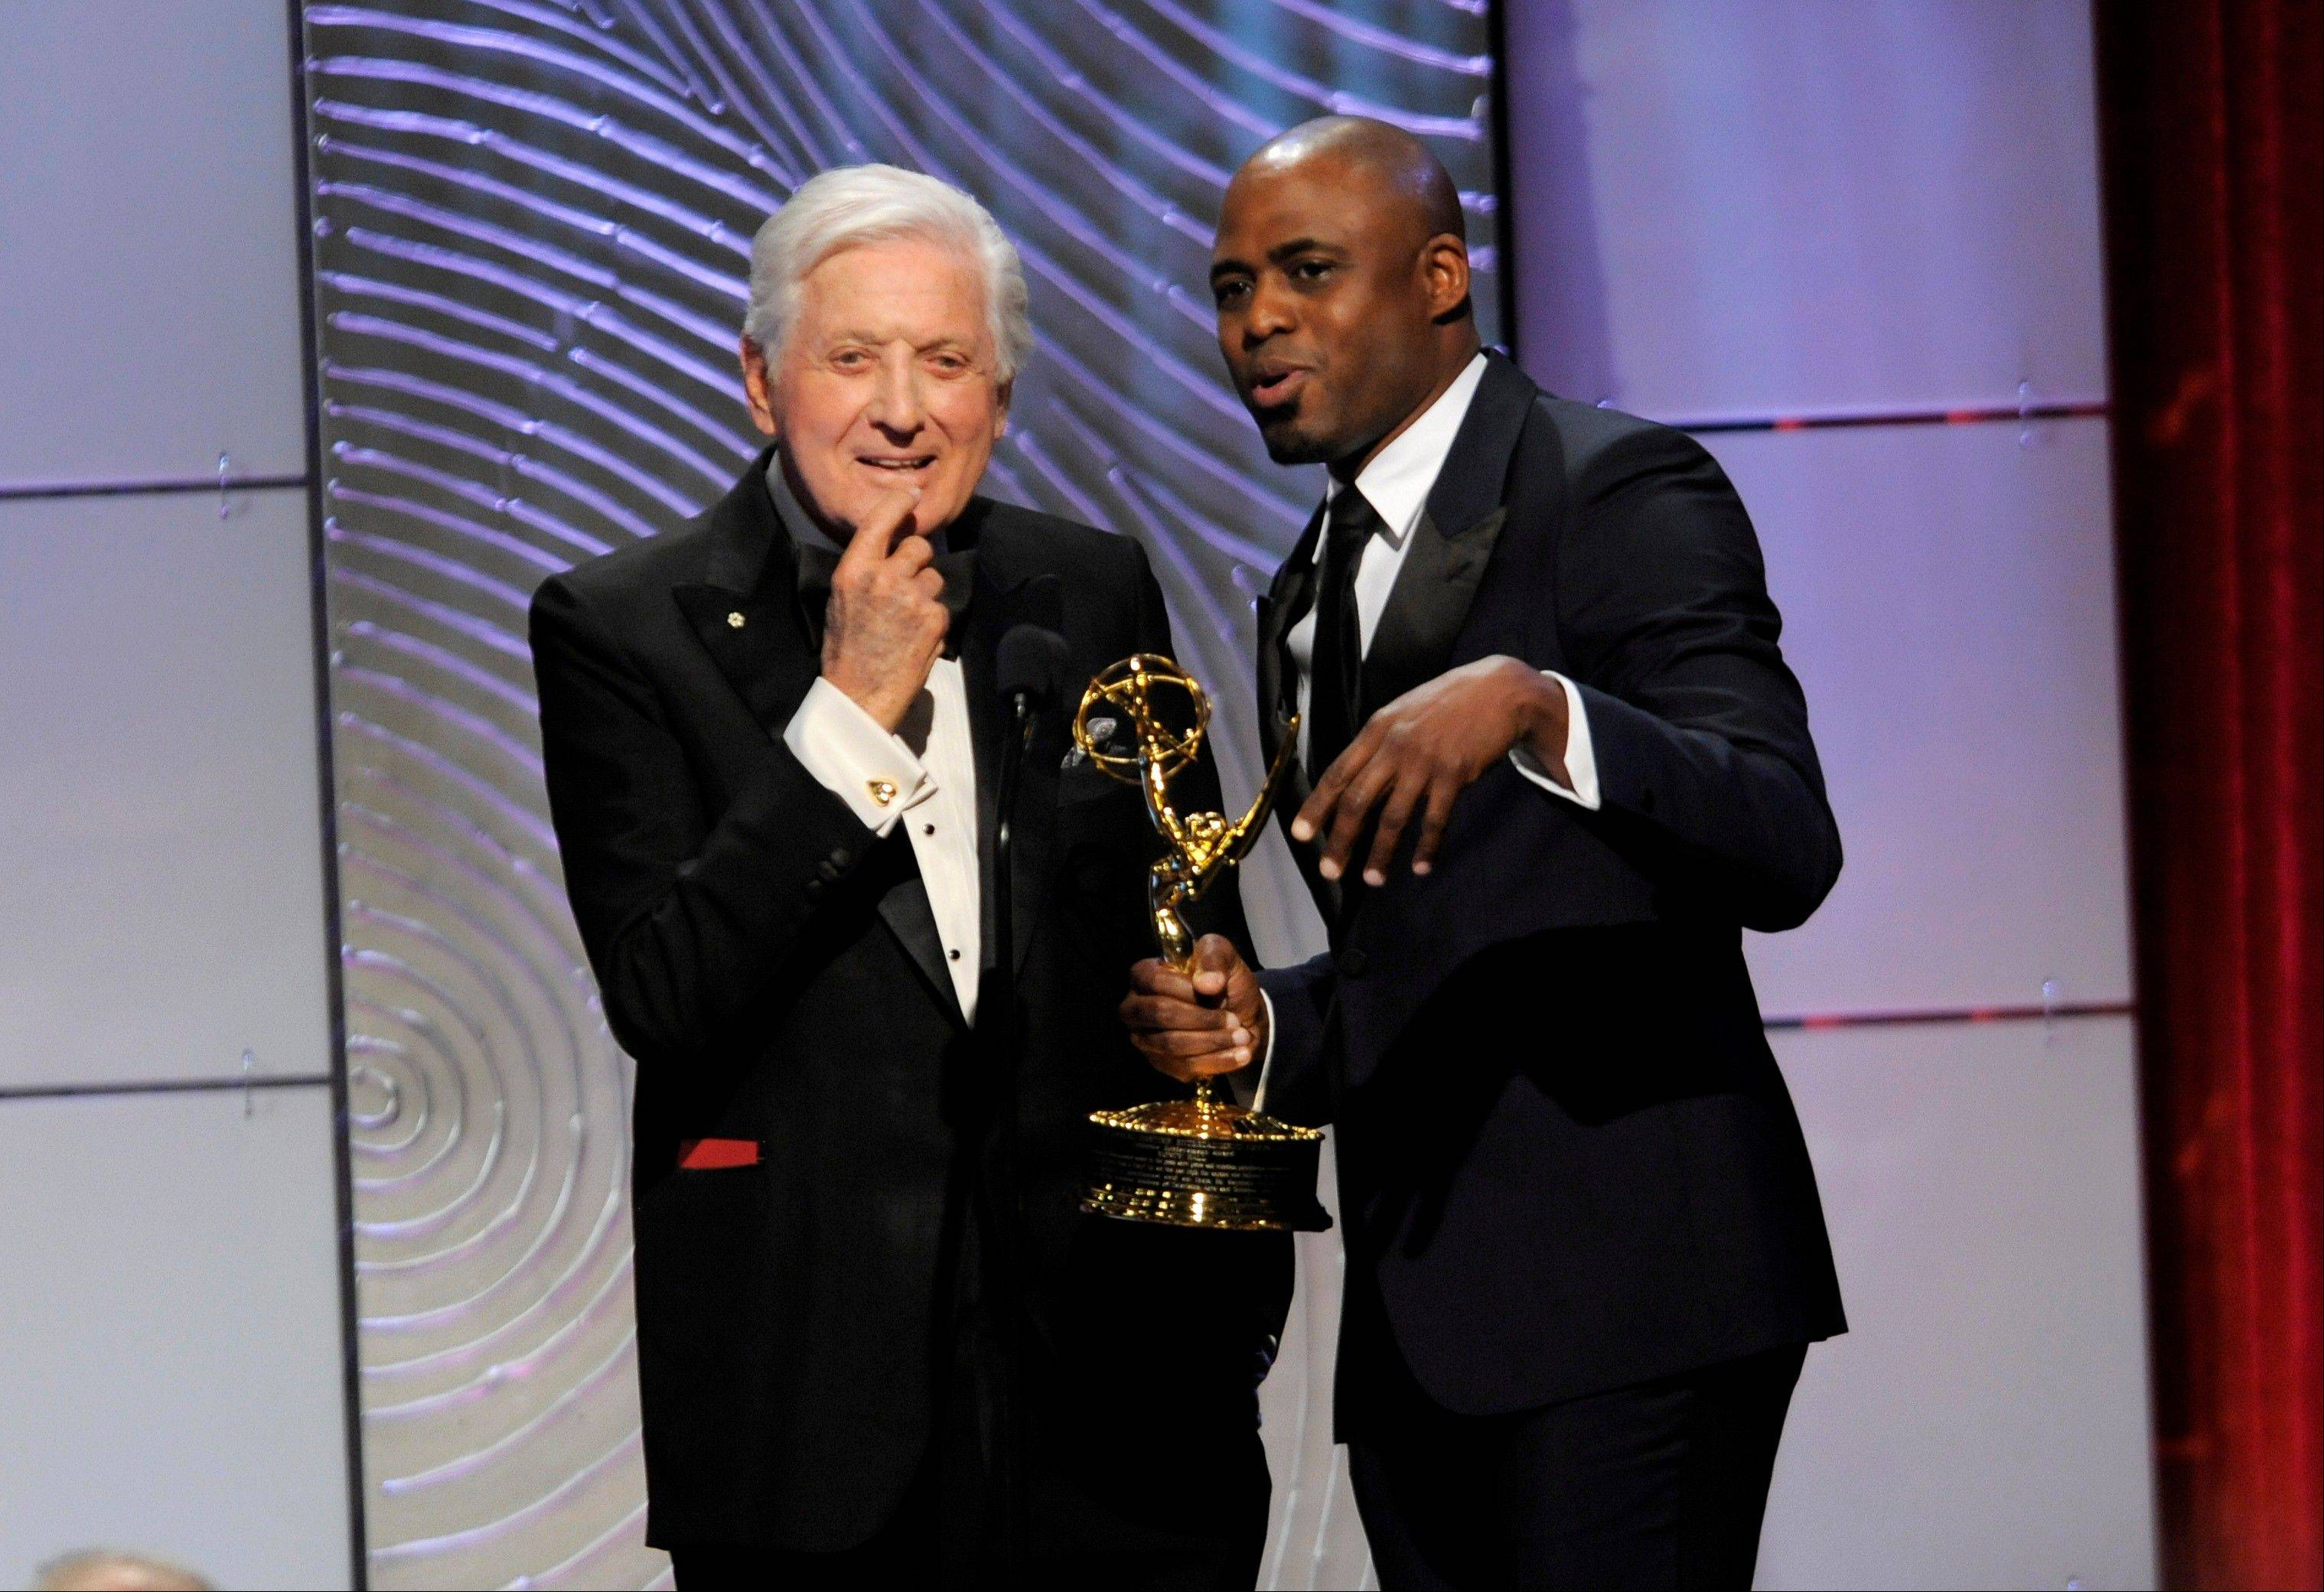 Wayne Brady, right, presents the lifetime achievement award to Monty Hall at the 40th Annual Daytime Emmy Awards on Sunday, June 16, 2013, in Beverly Hills, Calif.